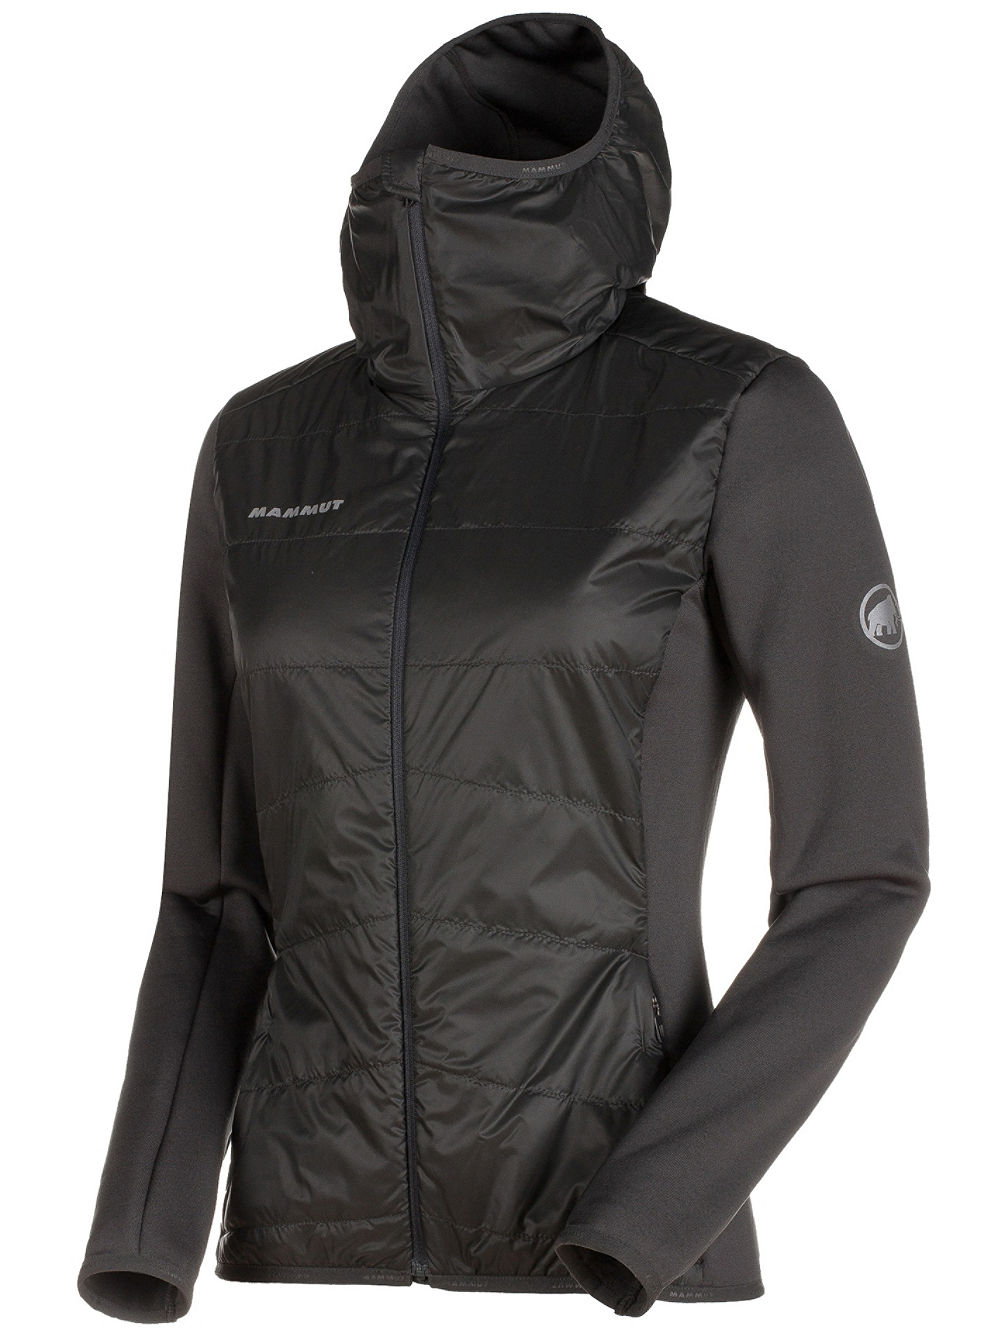 Aenergy In Hybrid Jacket